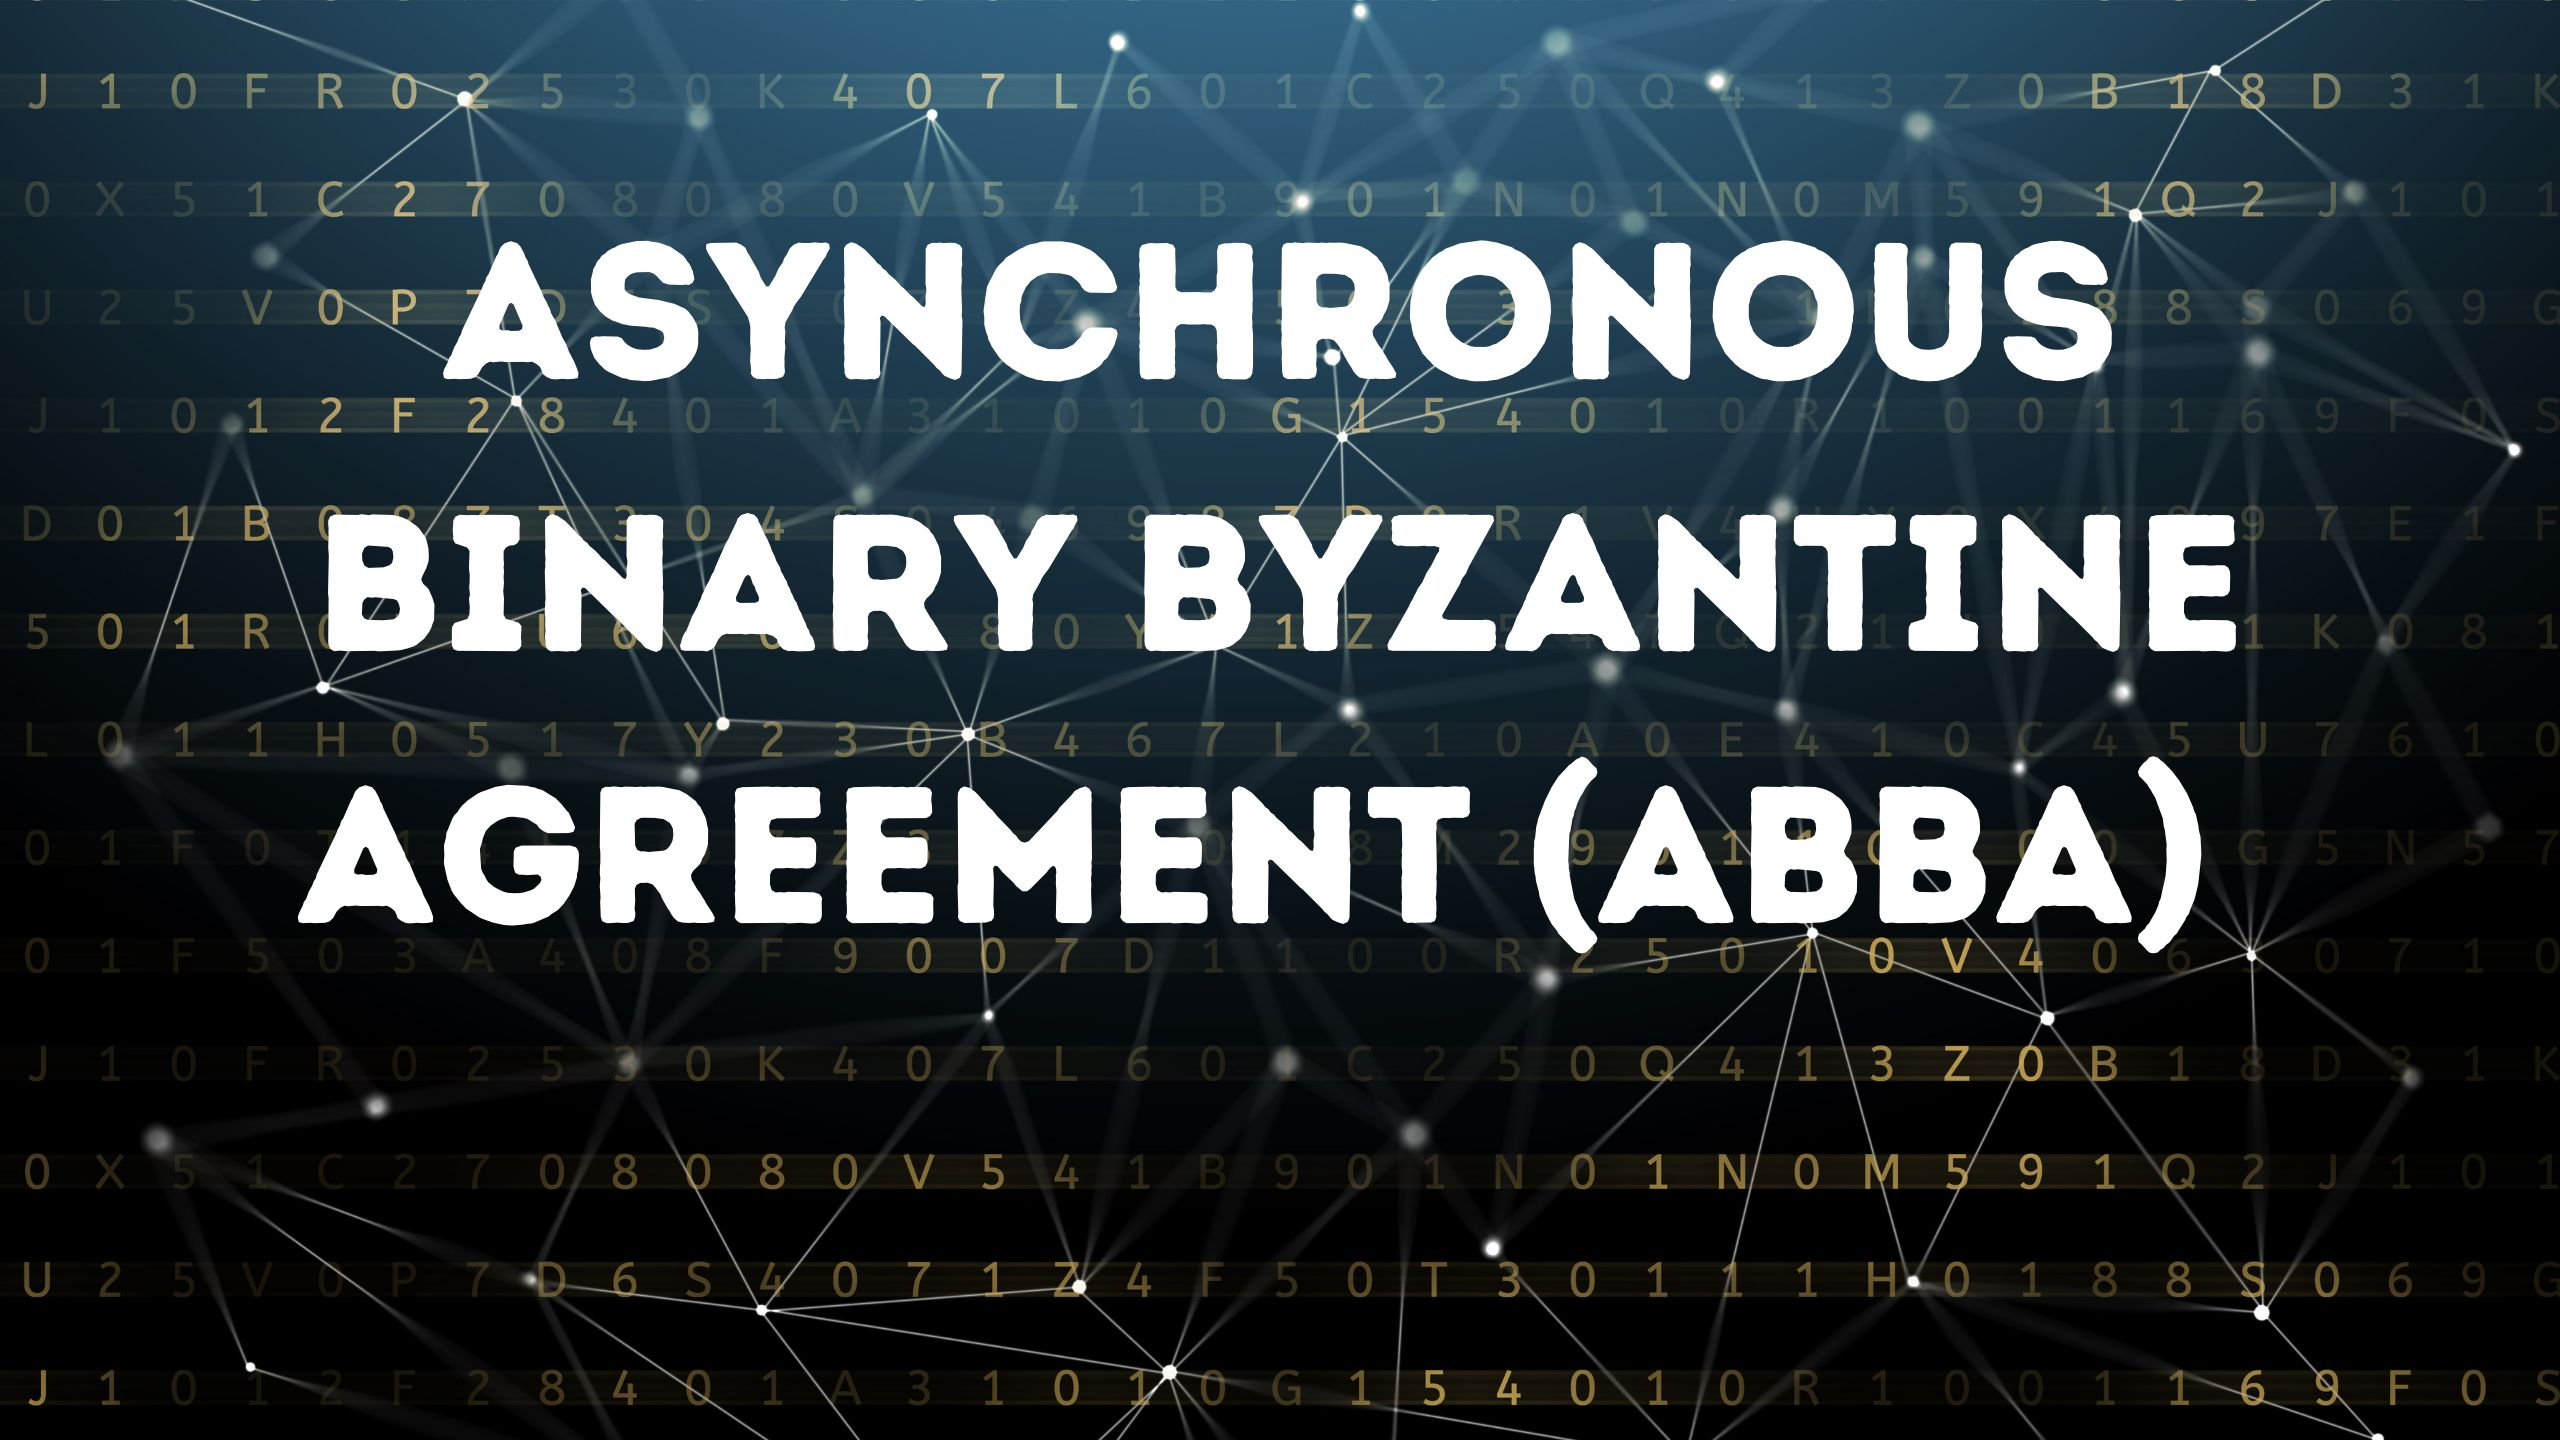 /analyzing-asynchronous-binary-byzantine-agreement-abba-consensus-on-skale-blockchain-gl2835to feature image